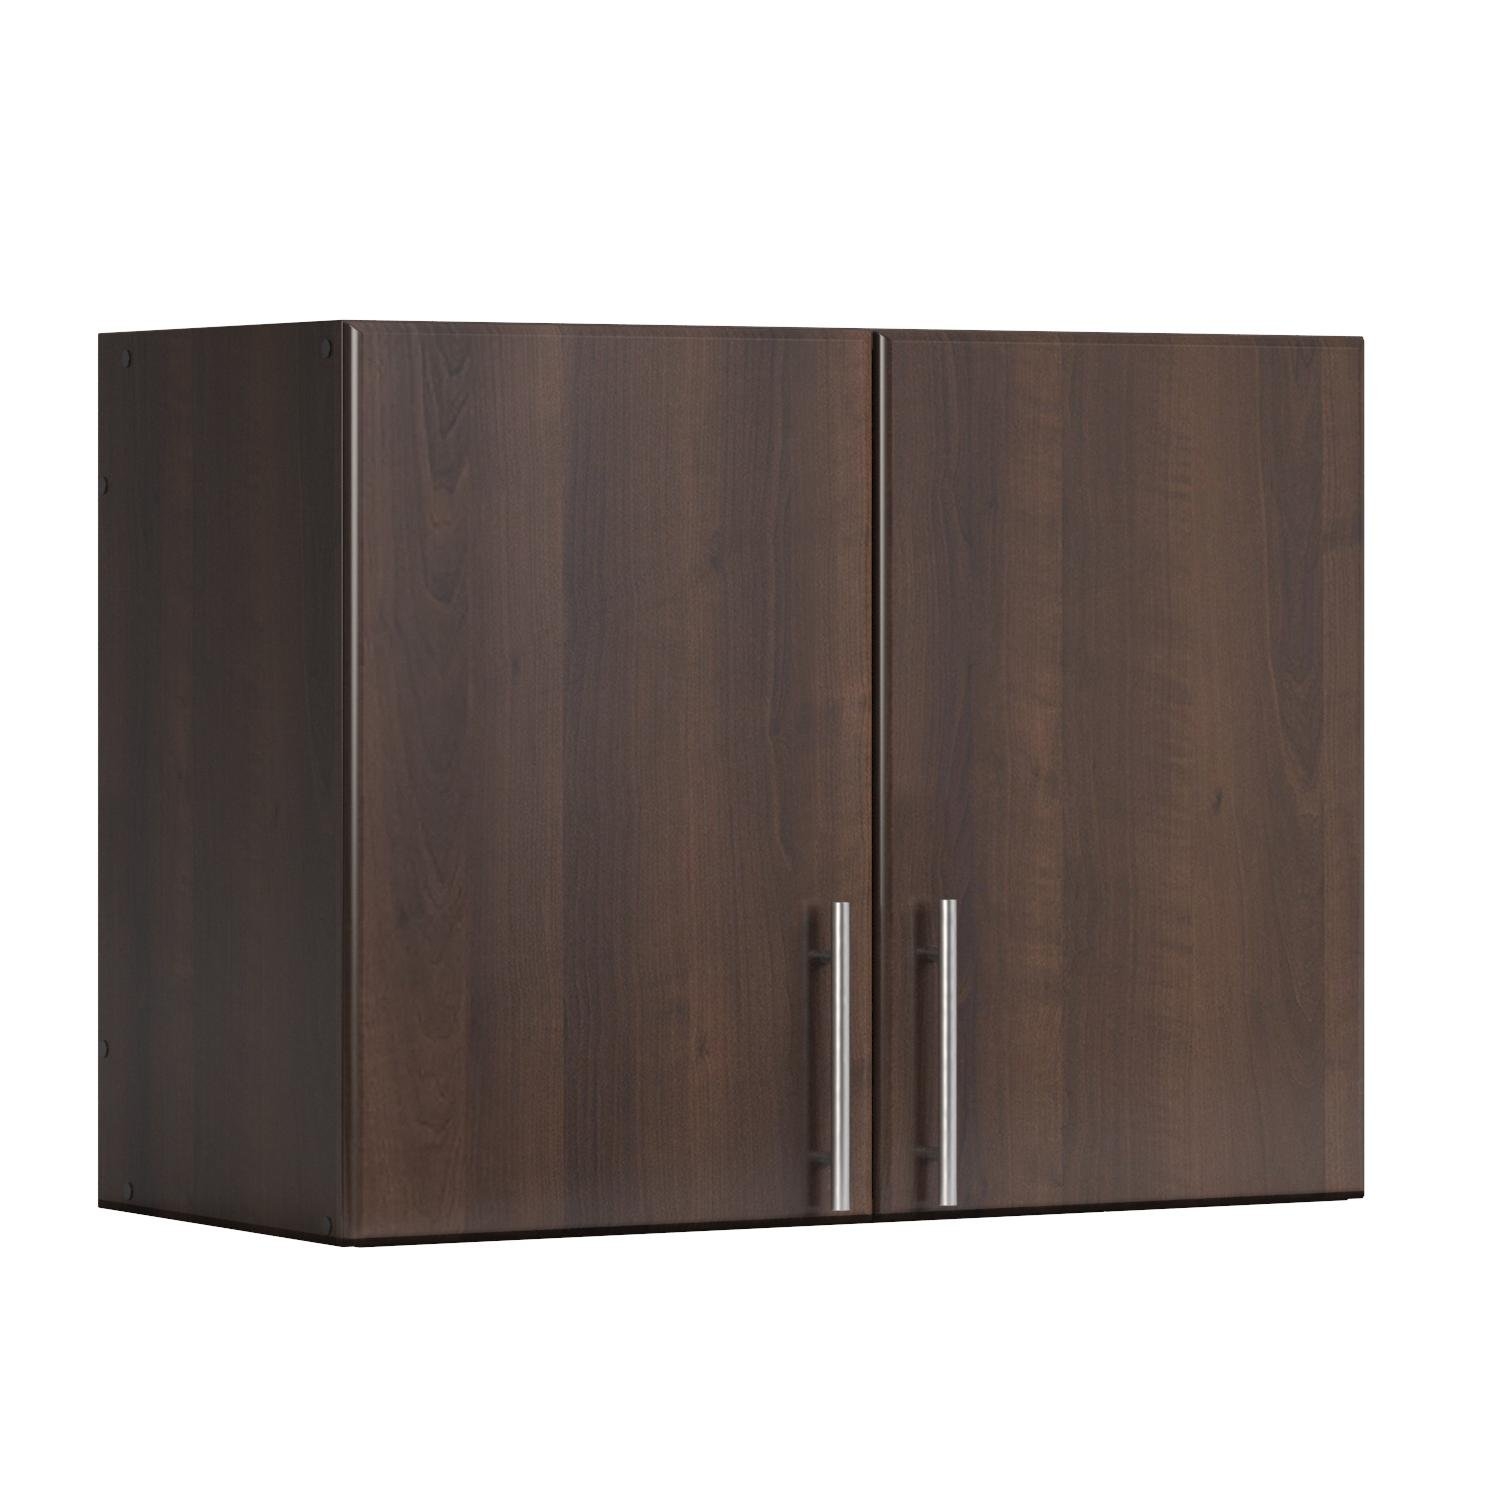 Prepac Espresso Elite Stackable Wall Cabinet, 32'', Brown